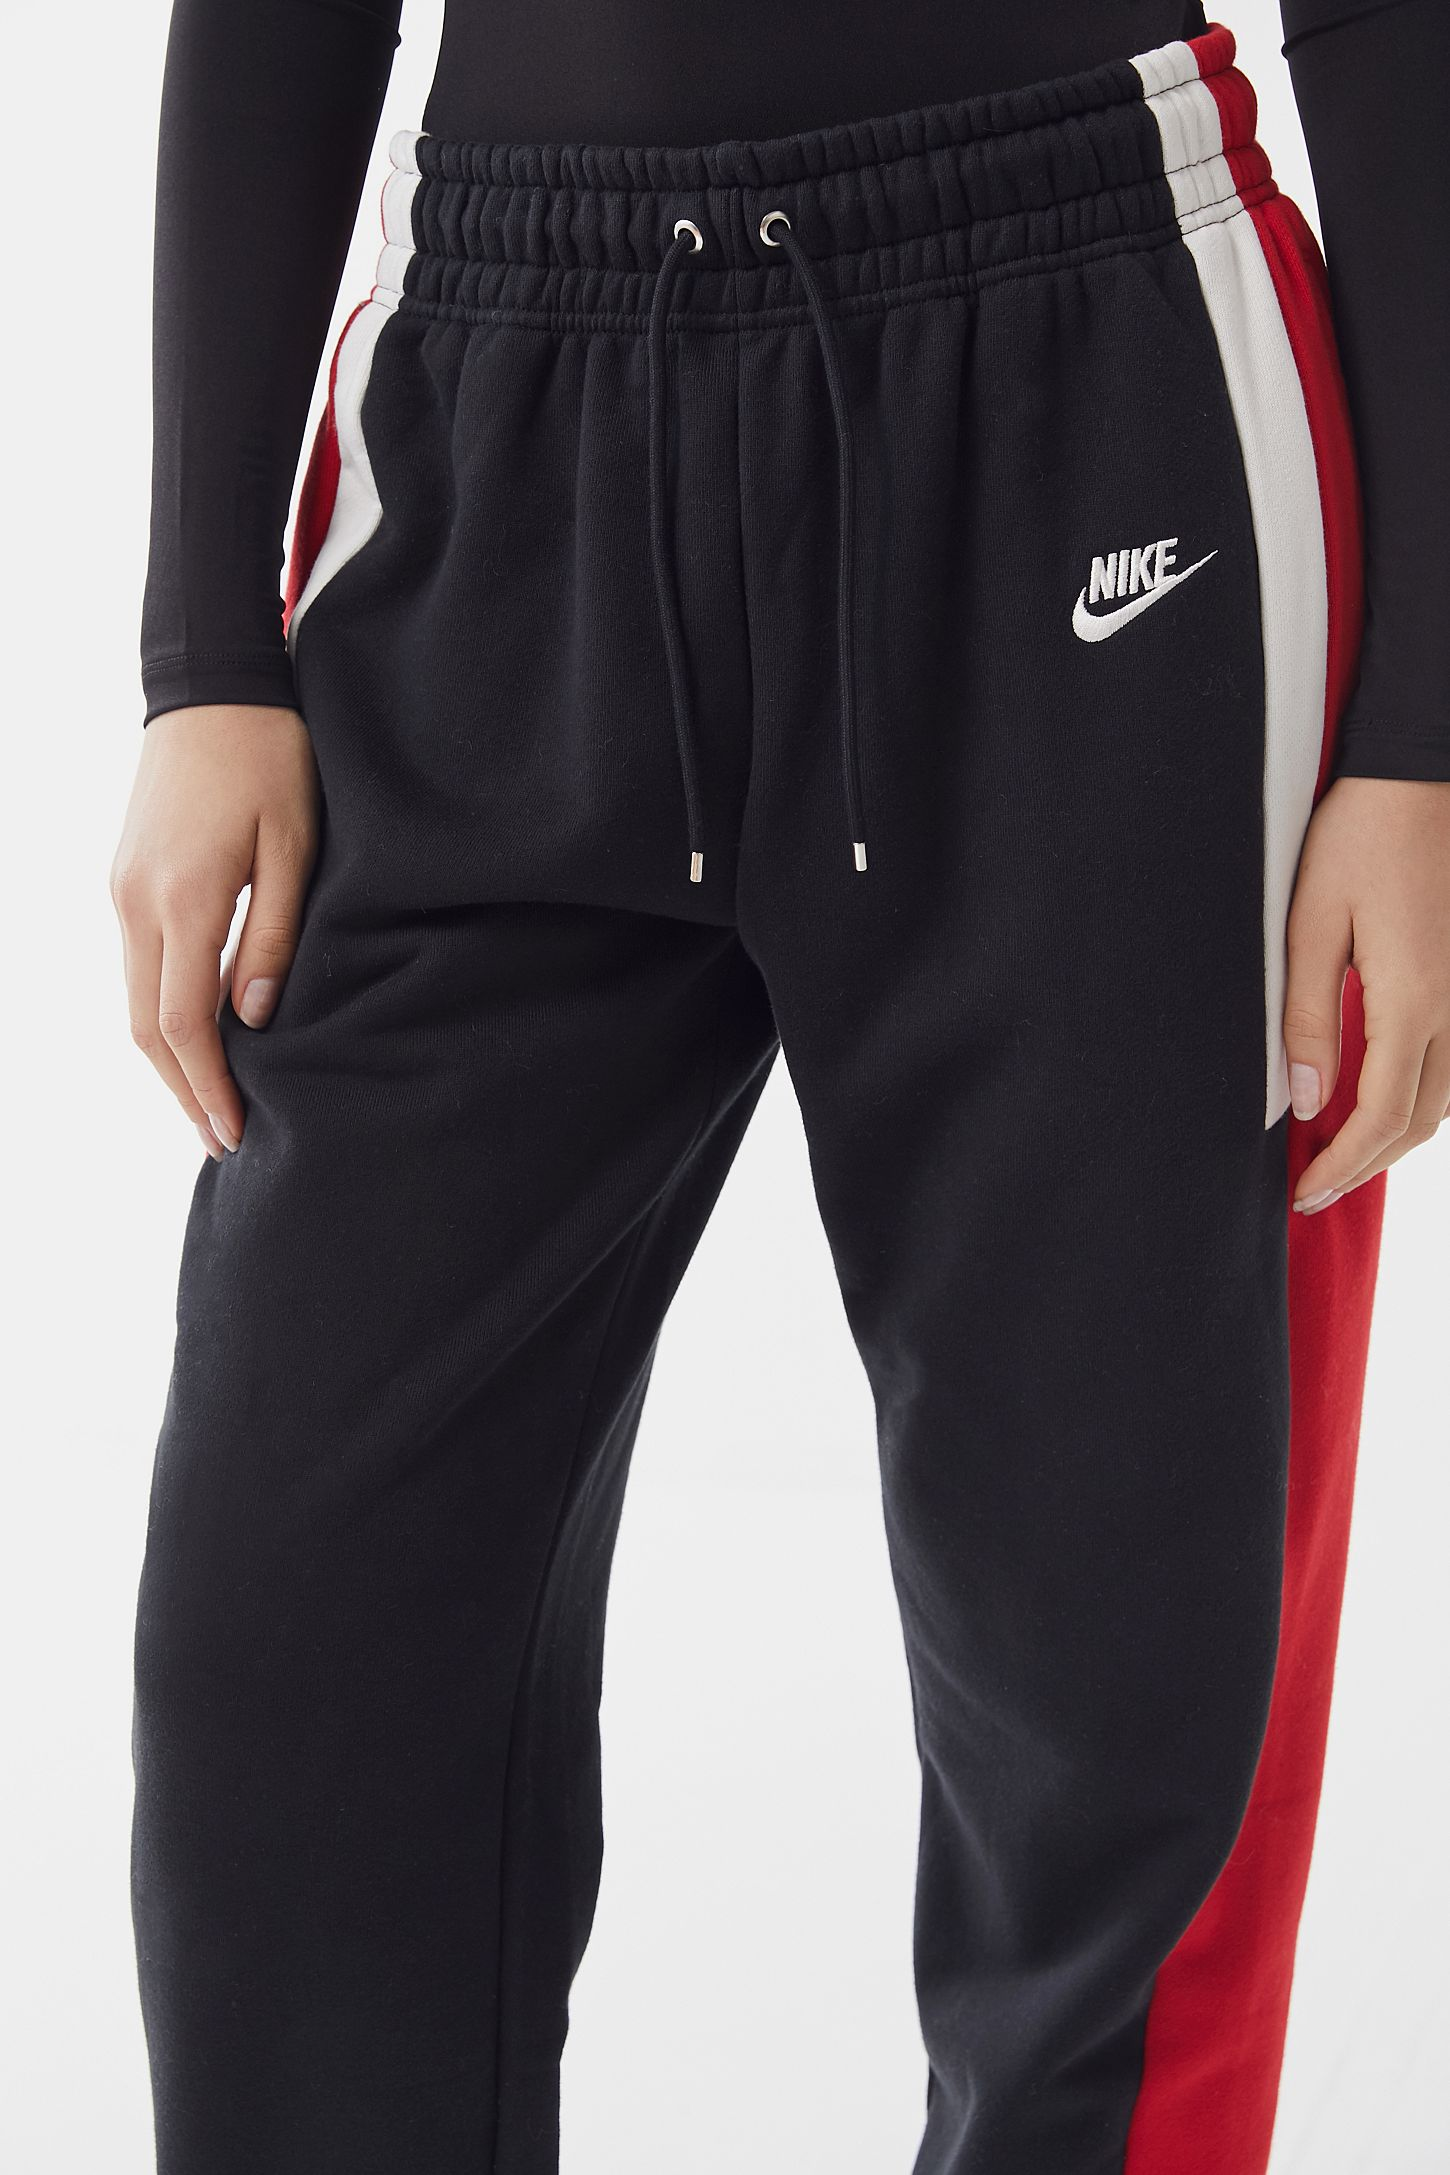 897b02e248e Nike Re-Issue Colorblock Drawstring Sweatpant | Urban Outfitters